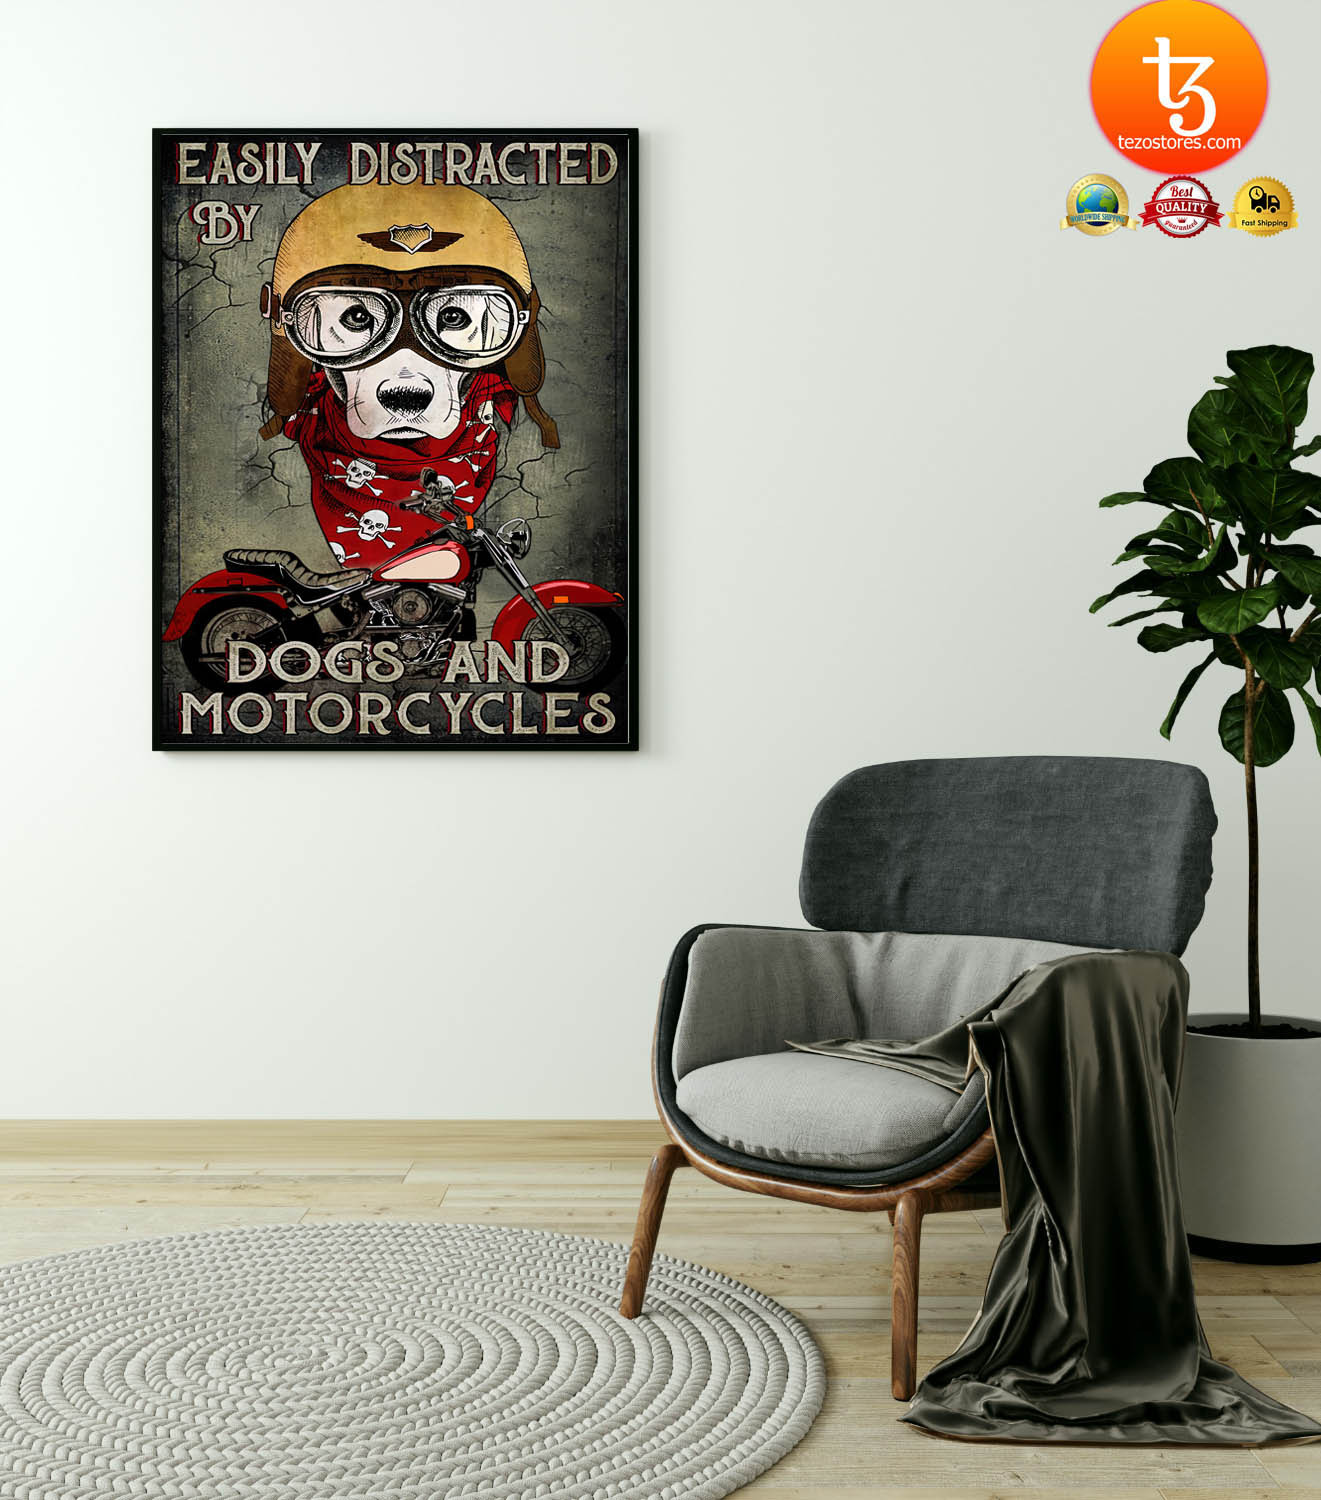 Easily distracted by dogs and motorcycles poster 4